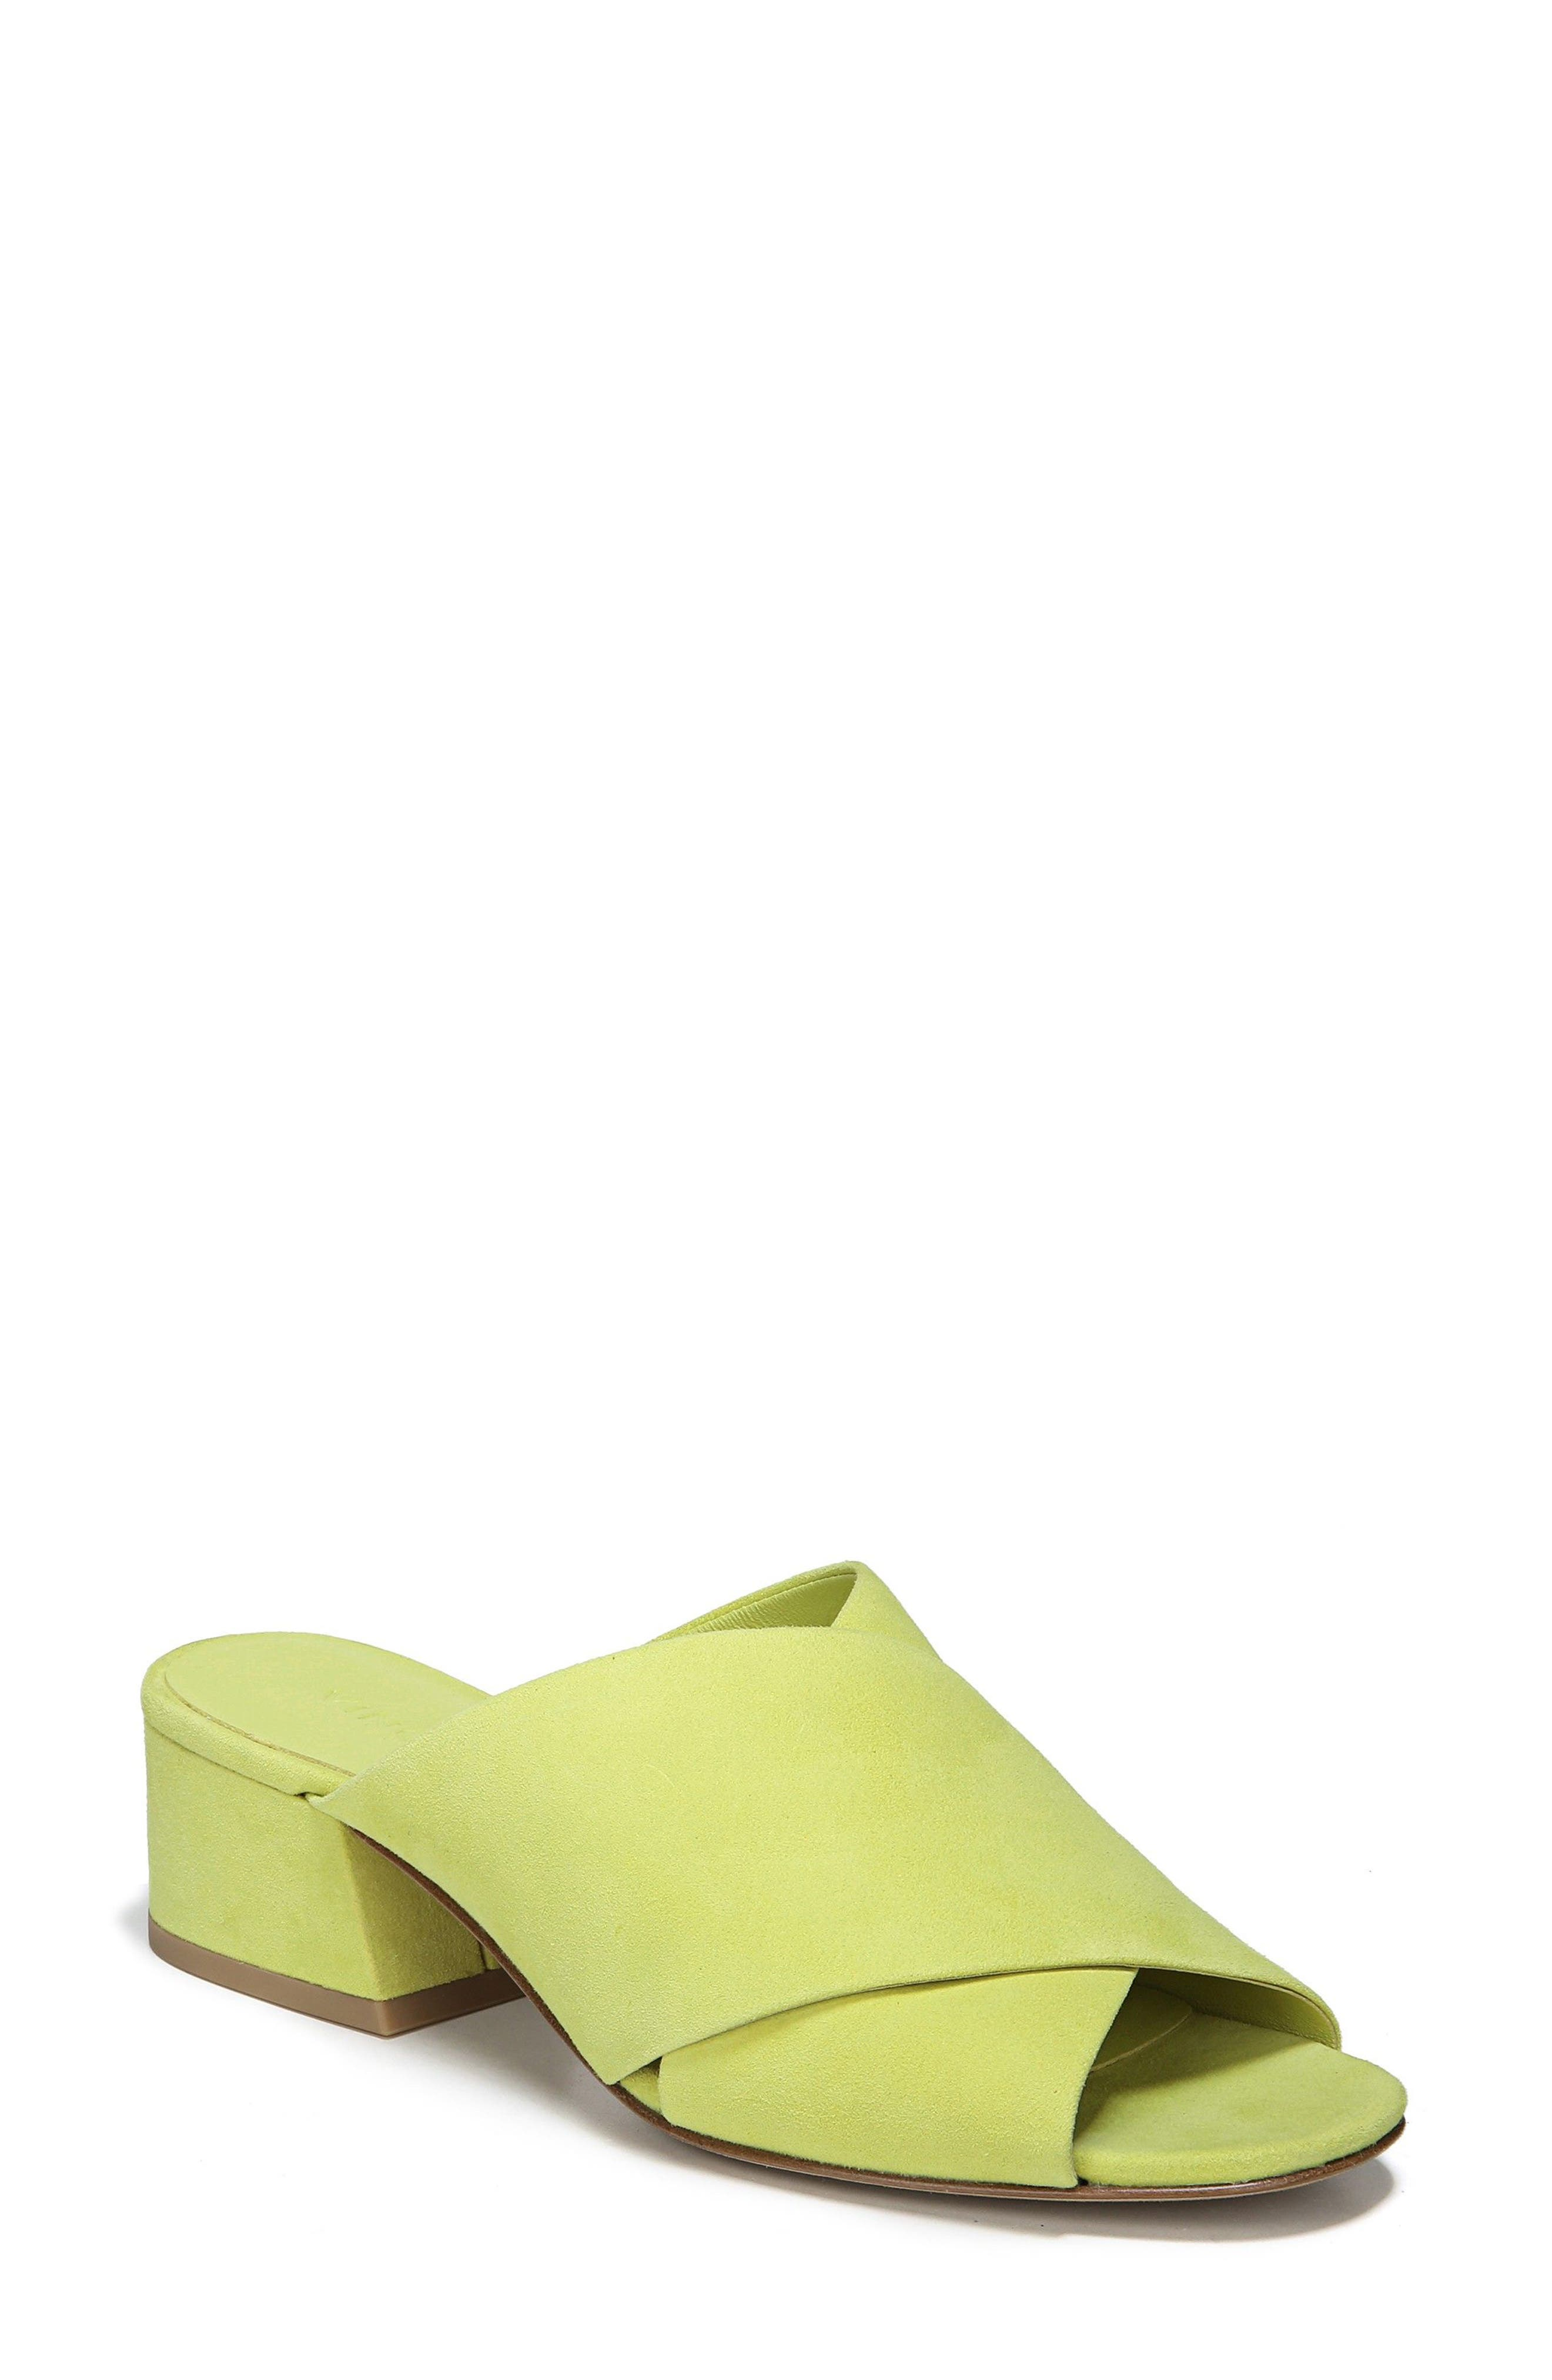 Vince Women's Karsen Suede Block Heel Slide Sandals